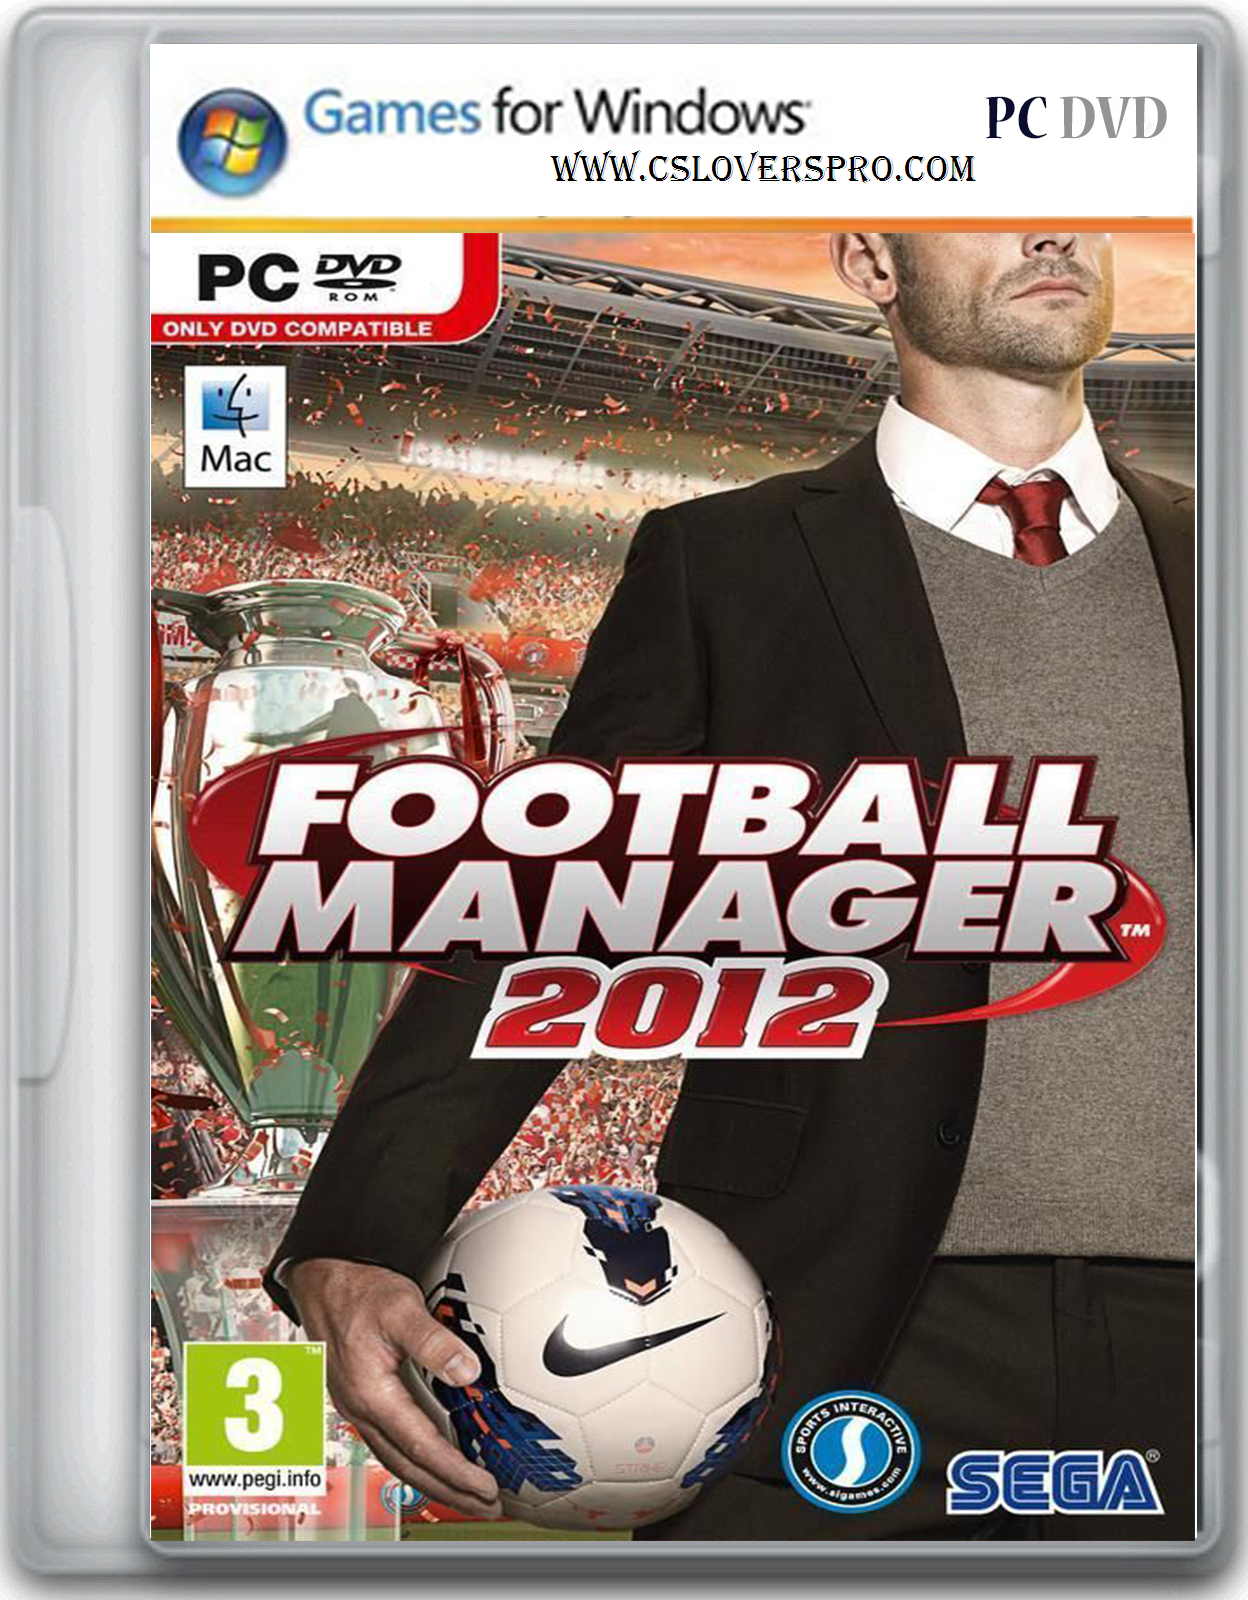 Football Manager 2012 PC Game Full version Free Download